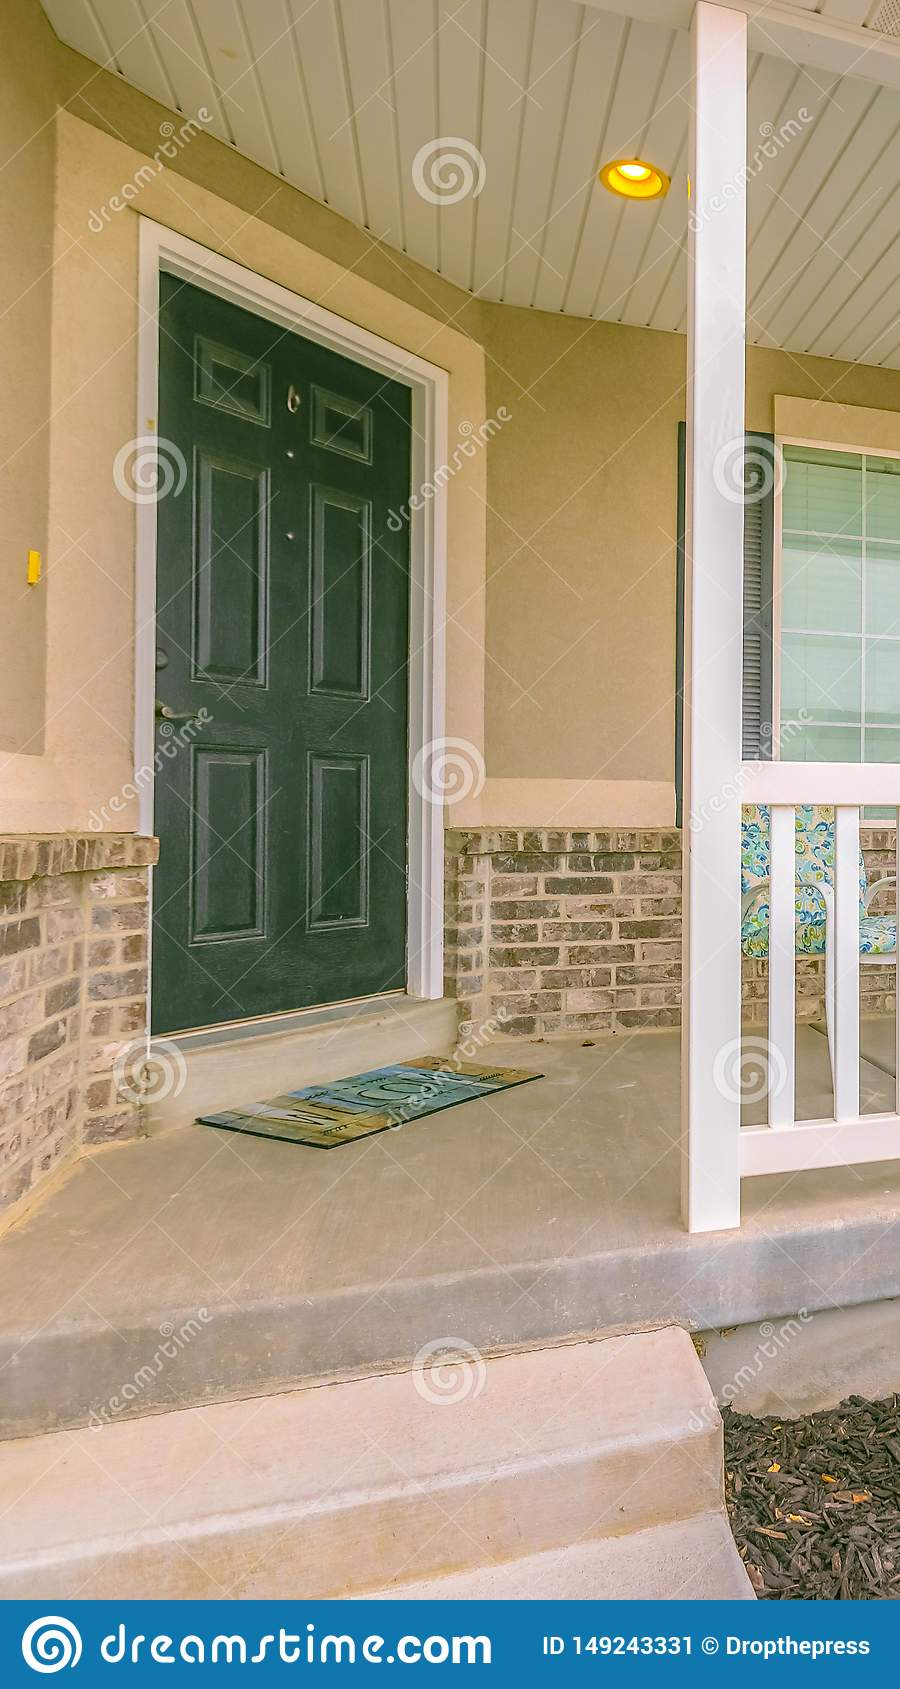 Vertical Frame Home Facade With Yard And Stairs In Front Of The Small Porch With Furniture Stock Image Image Of Entry Door 149243331